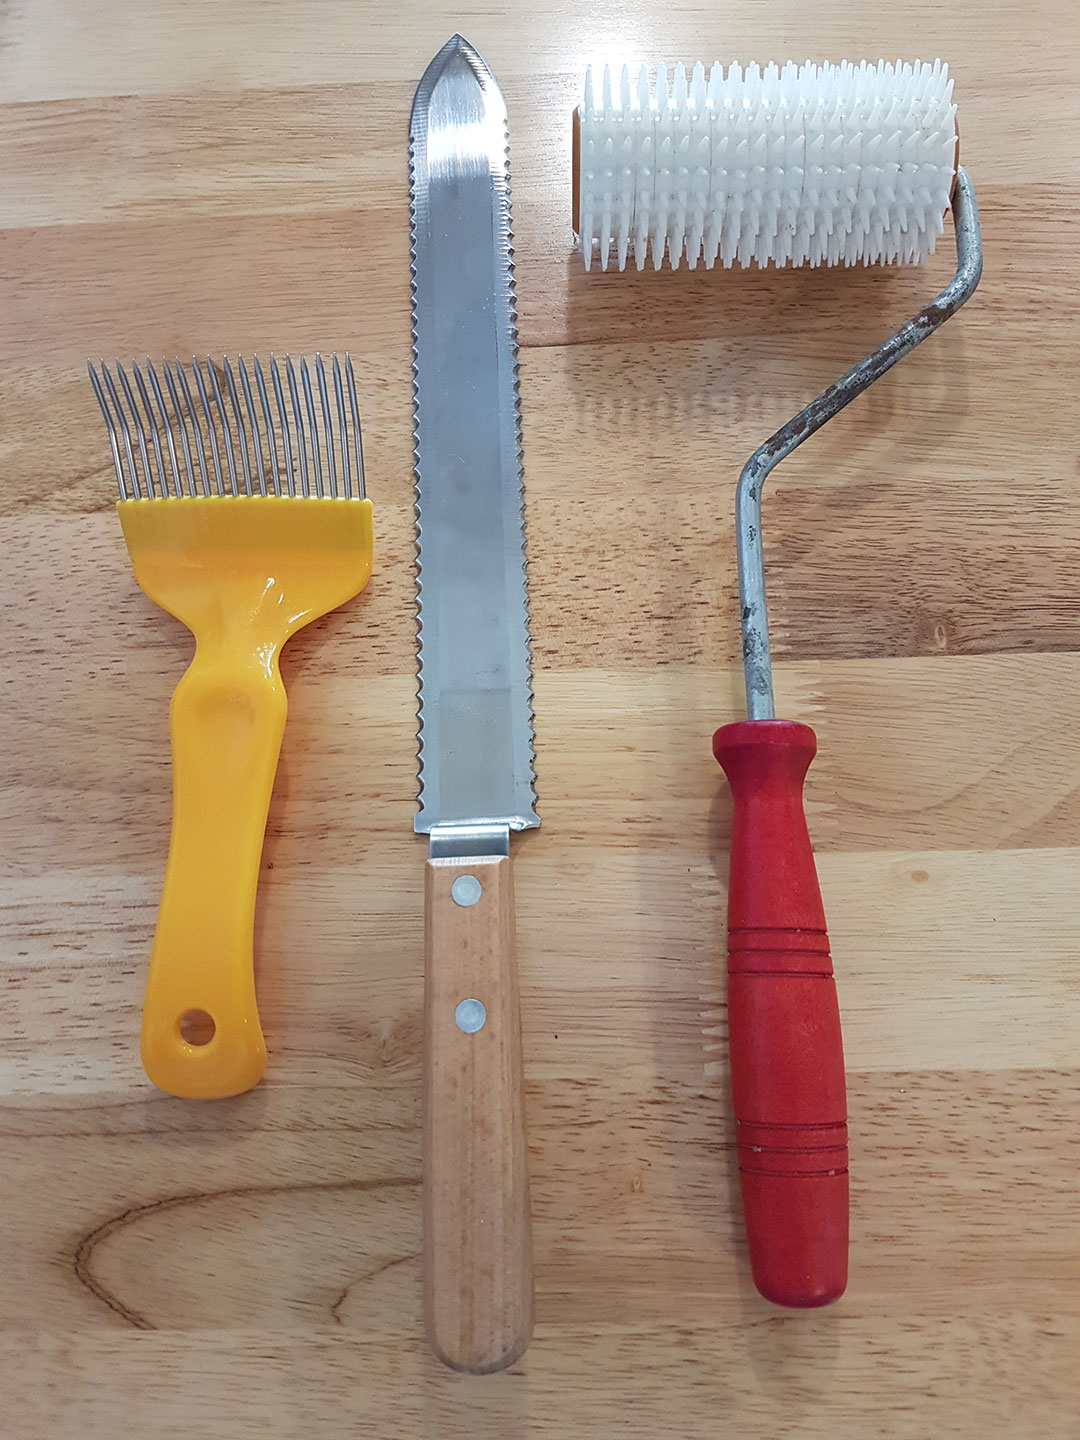 uncapping-tools